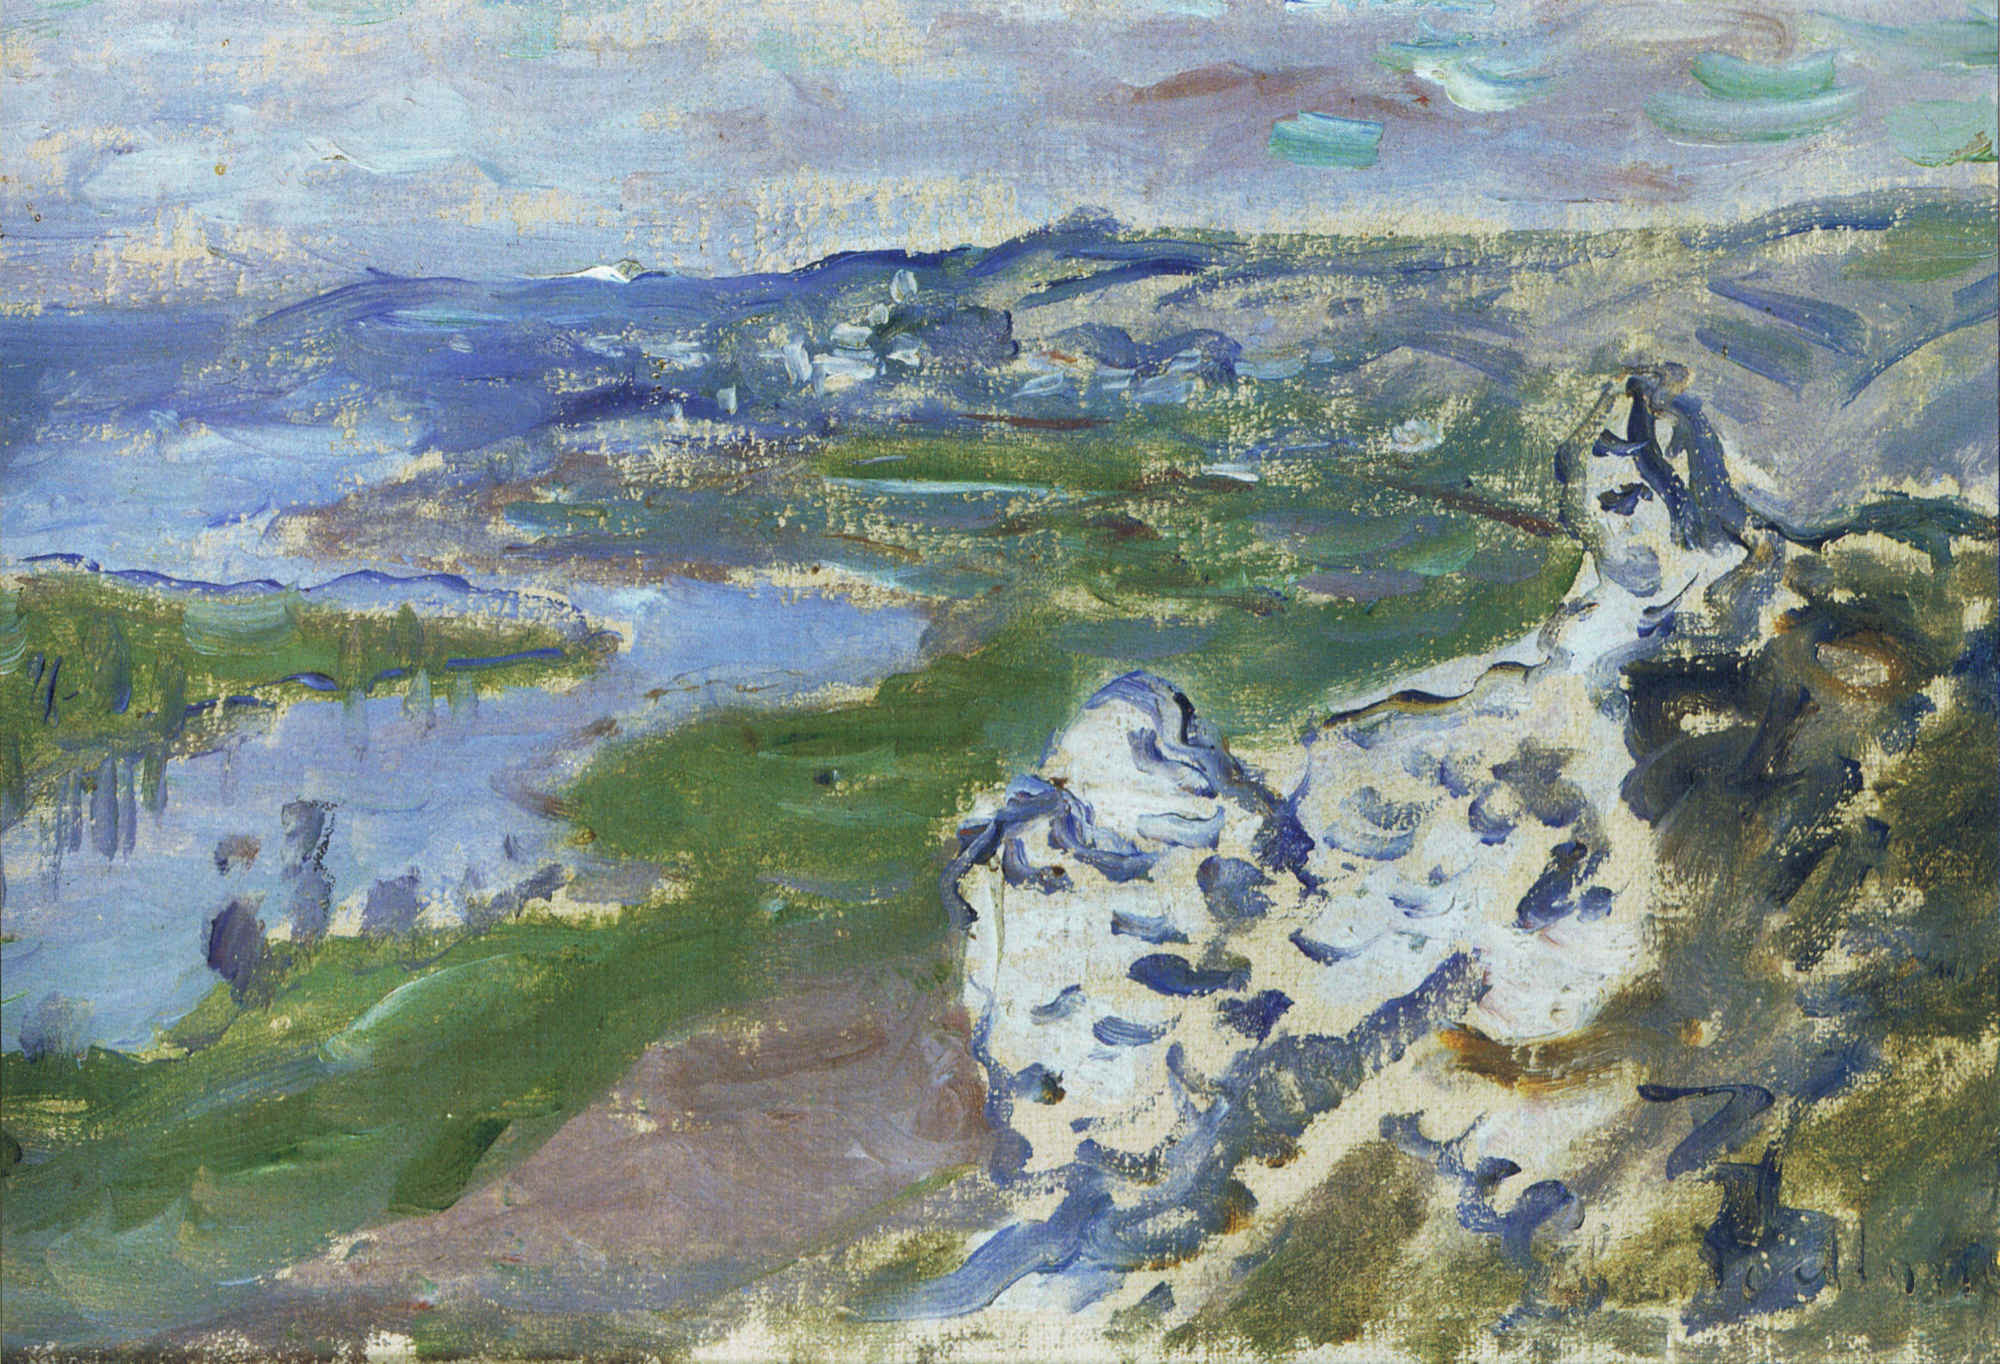 Claude Monet - The Seine, seen from the heights Chantemesle 1881